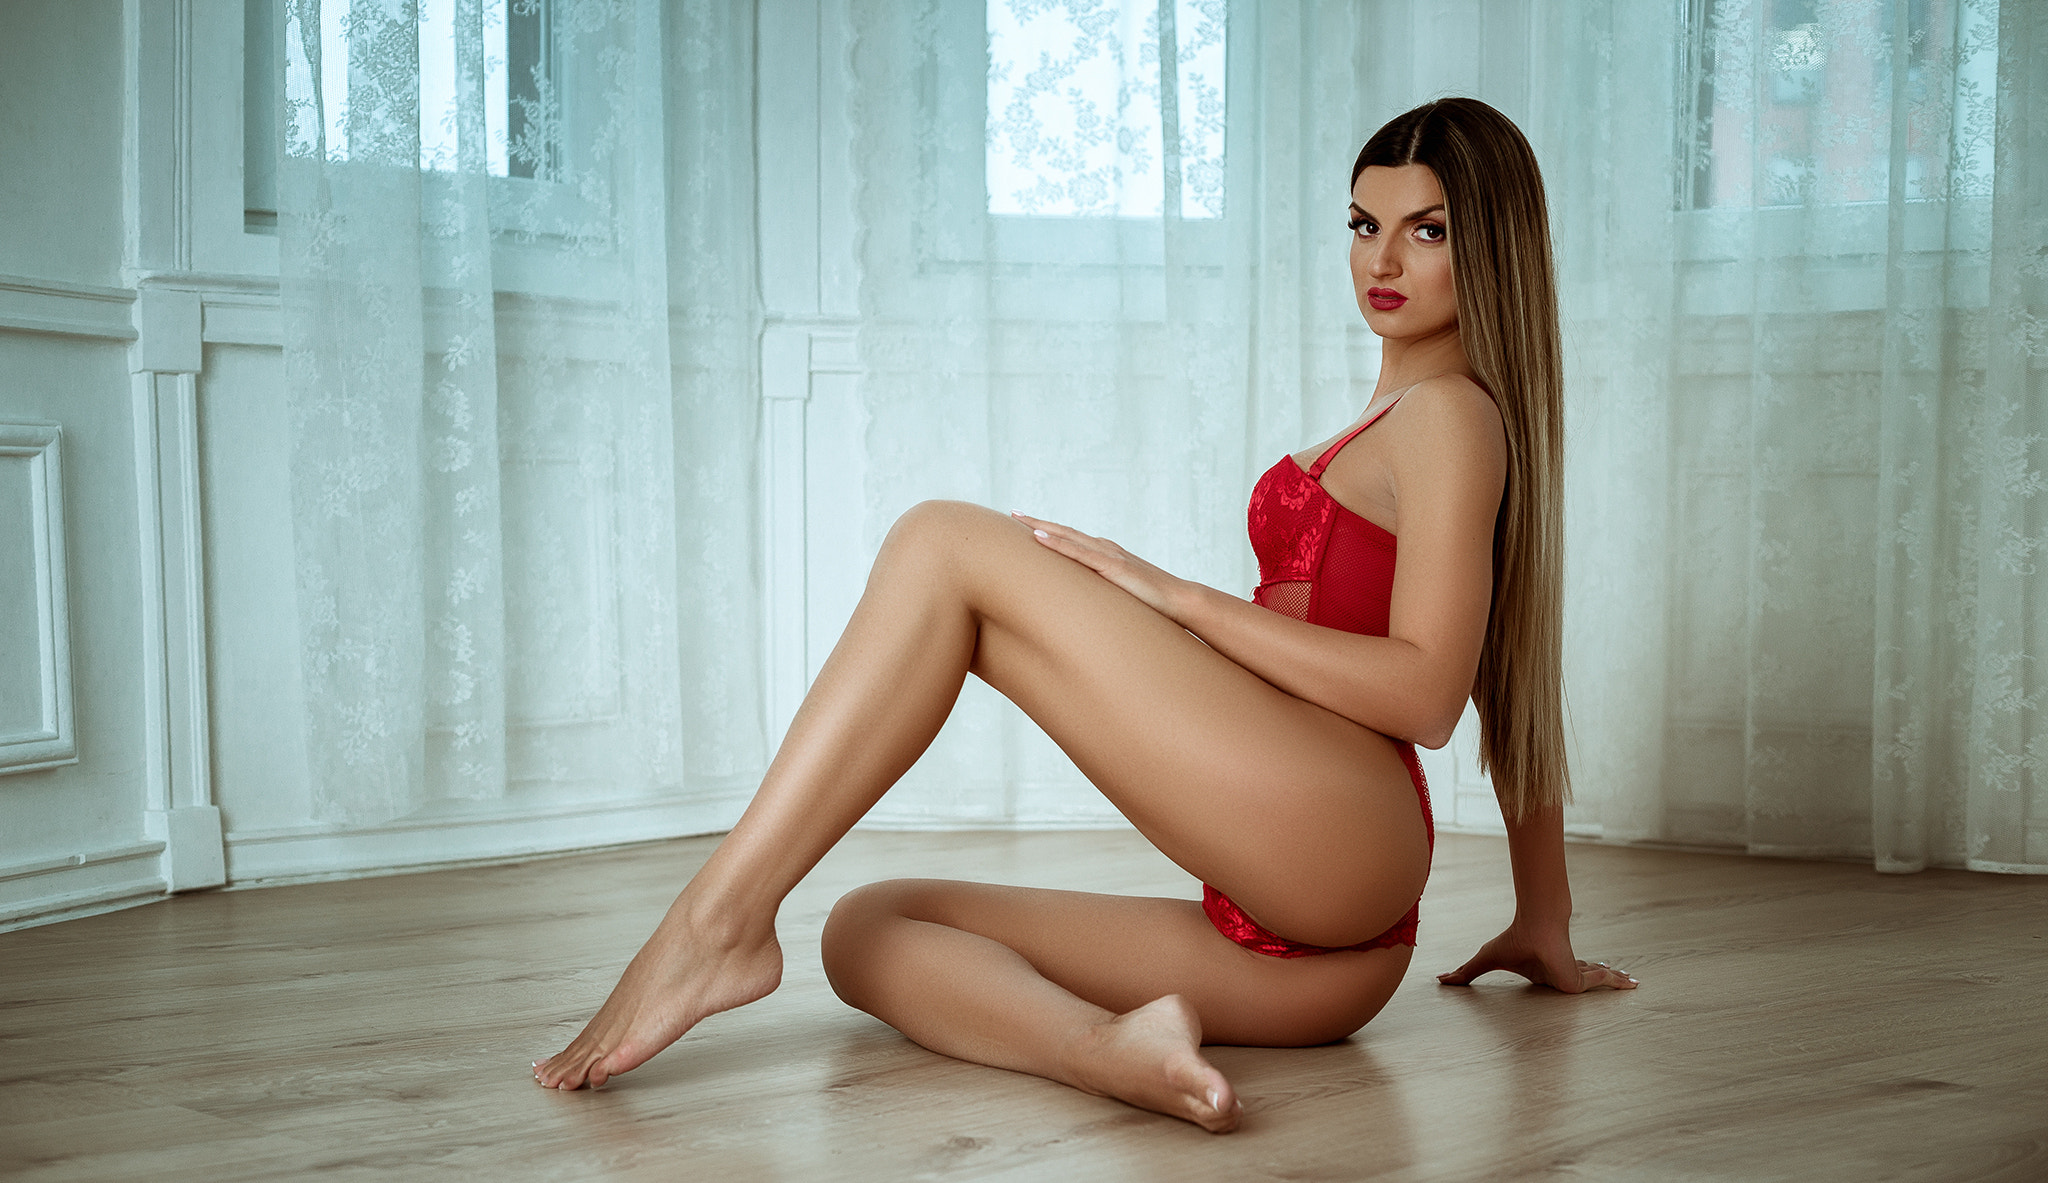 Invite girls accessible to Colaba escorts with a single click